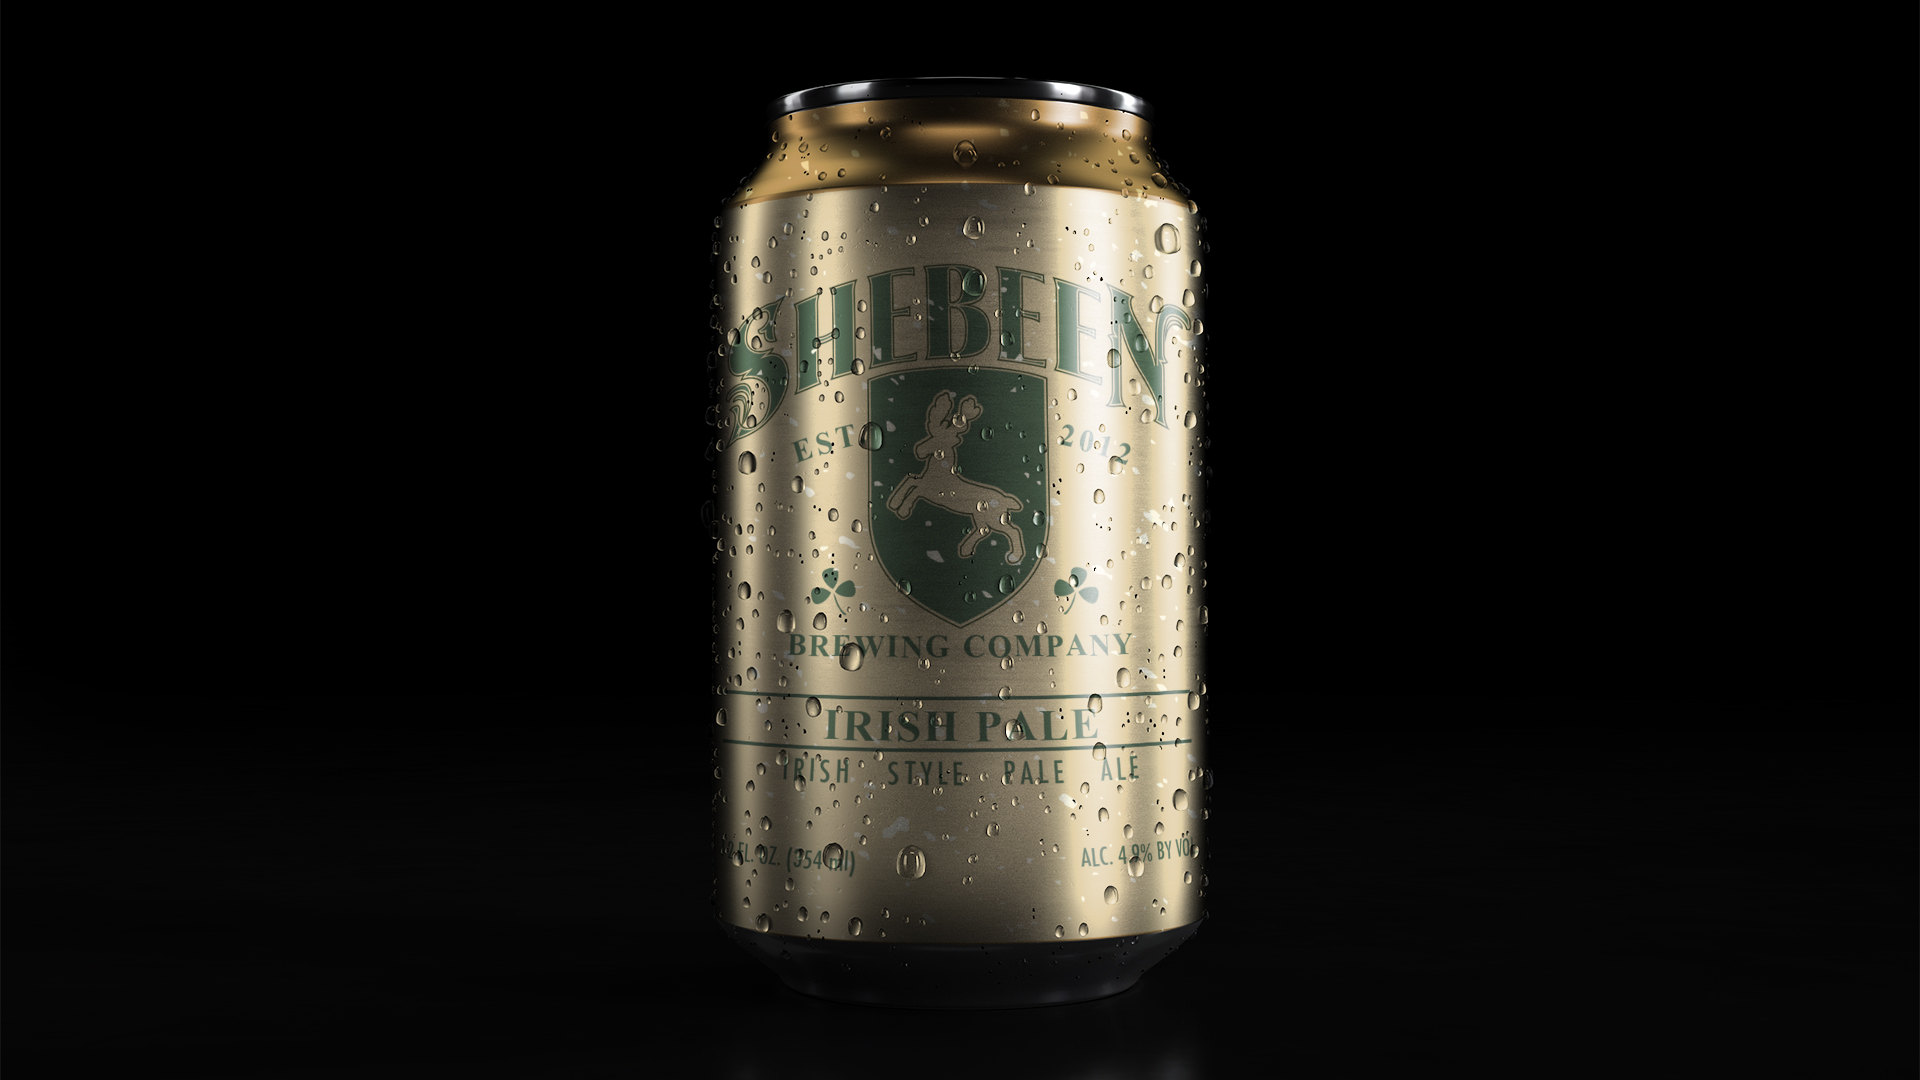 Shebeen-Irish-Pale-Ale-Can-1920x1080.jpg